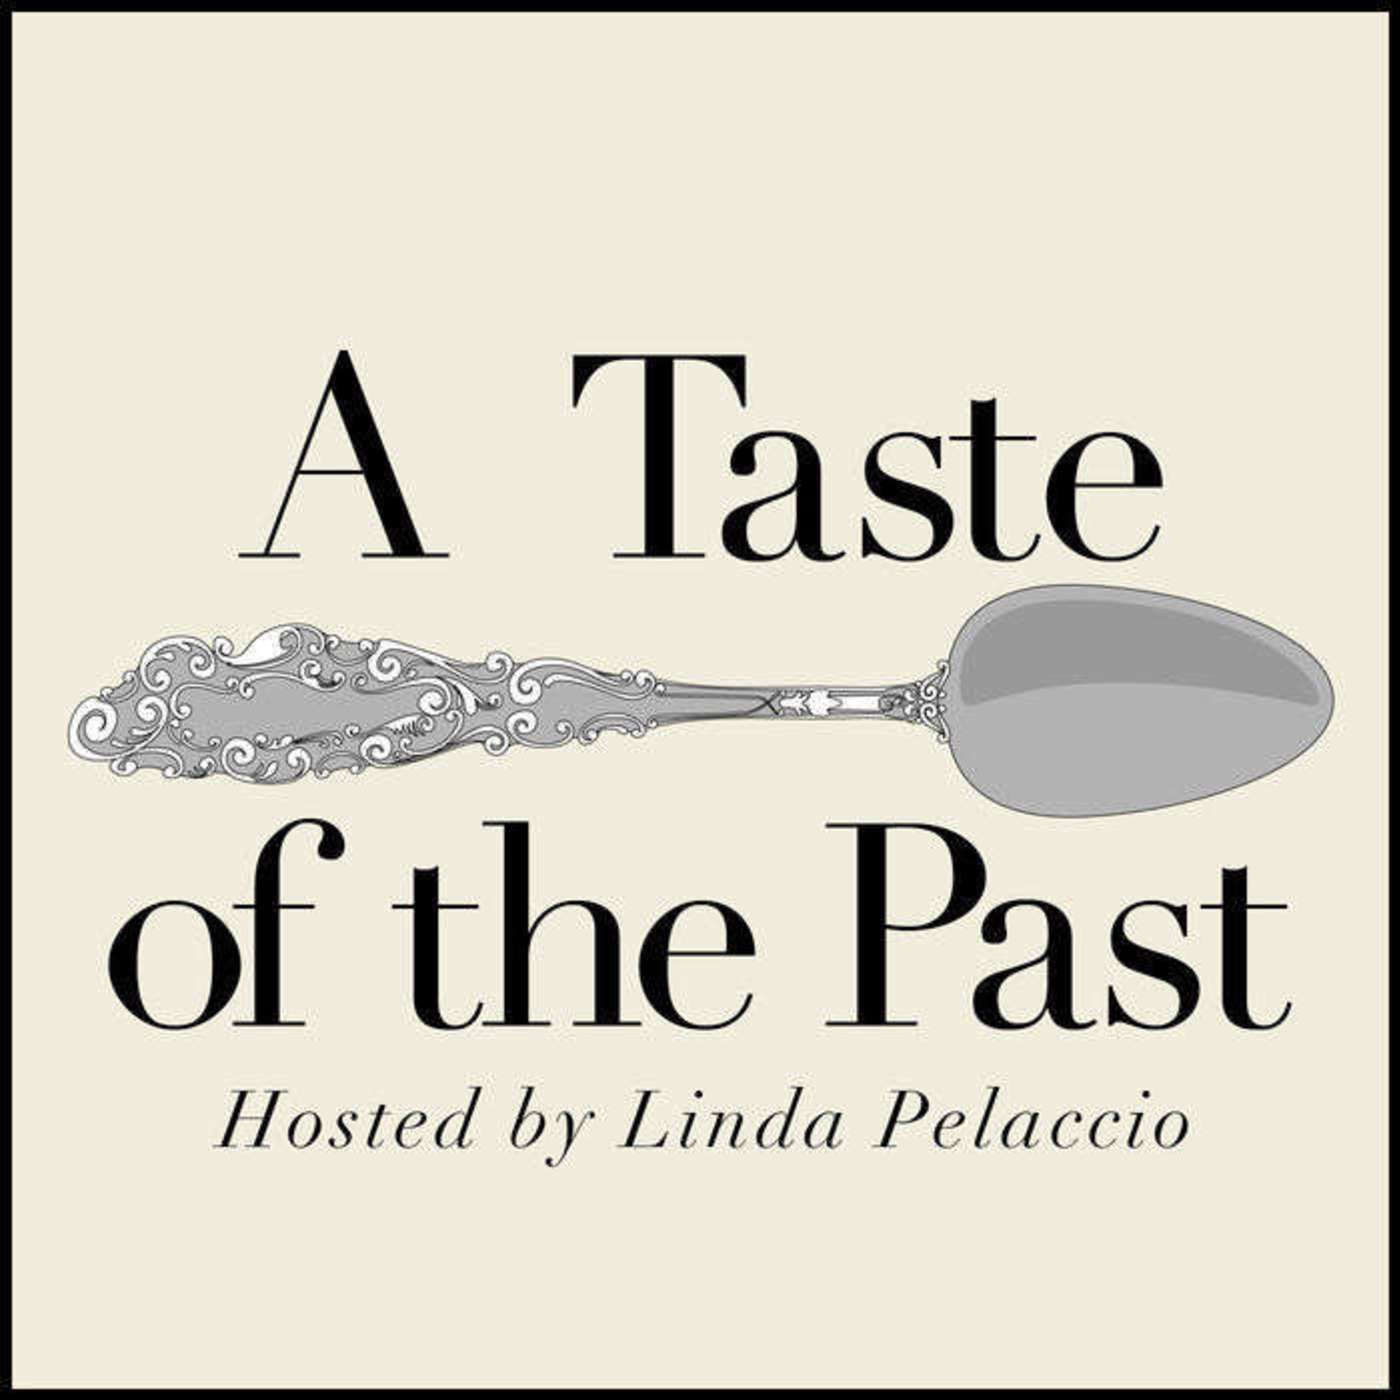 Episode 80: Julia Child and the Rise of Food TV